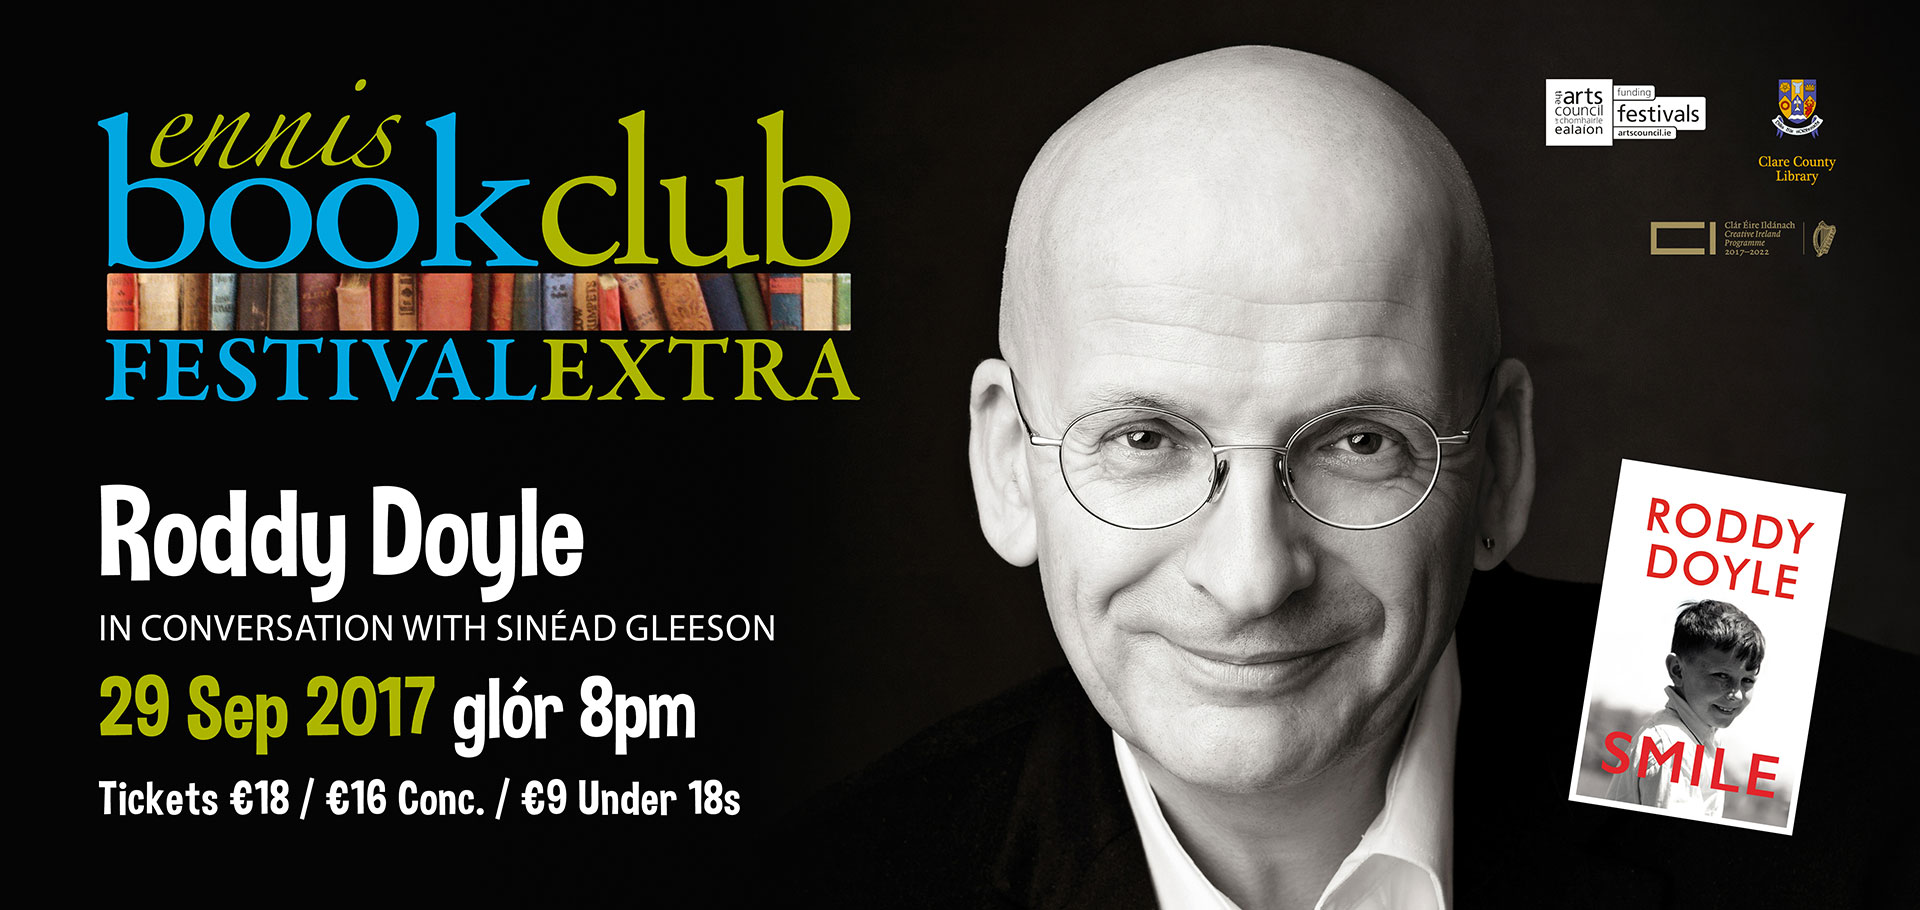 Roddy Doyle in Conversation with Sinéad Gleeson